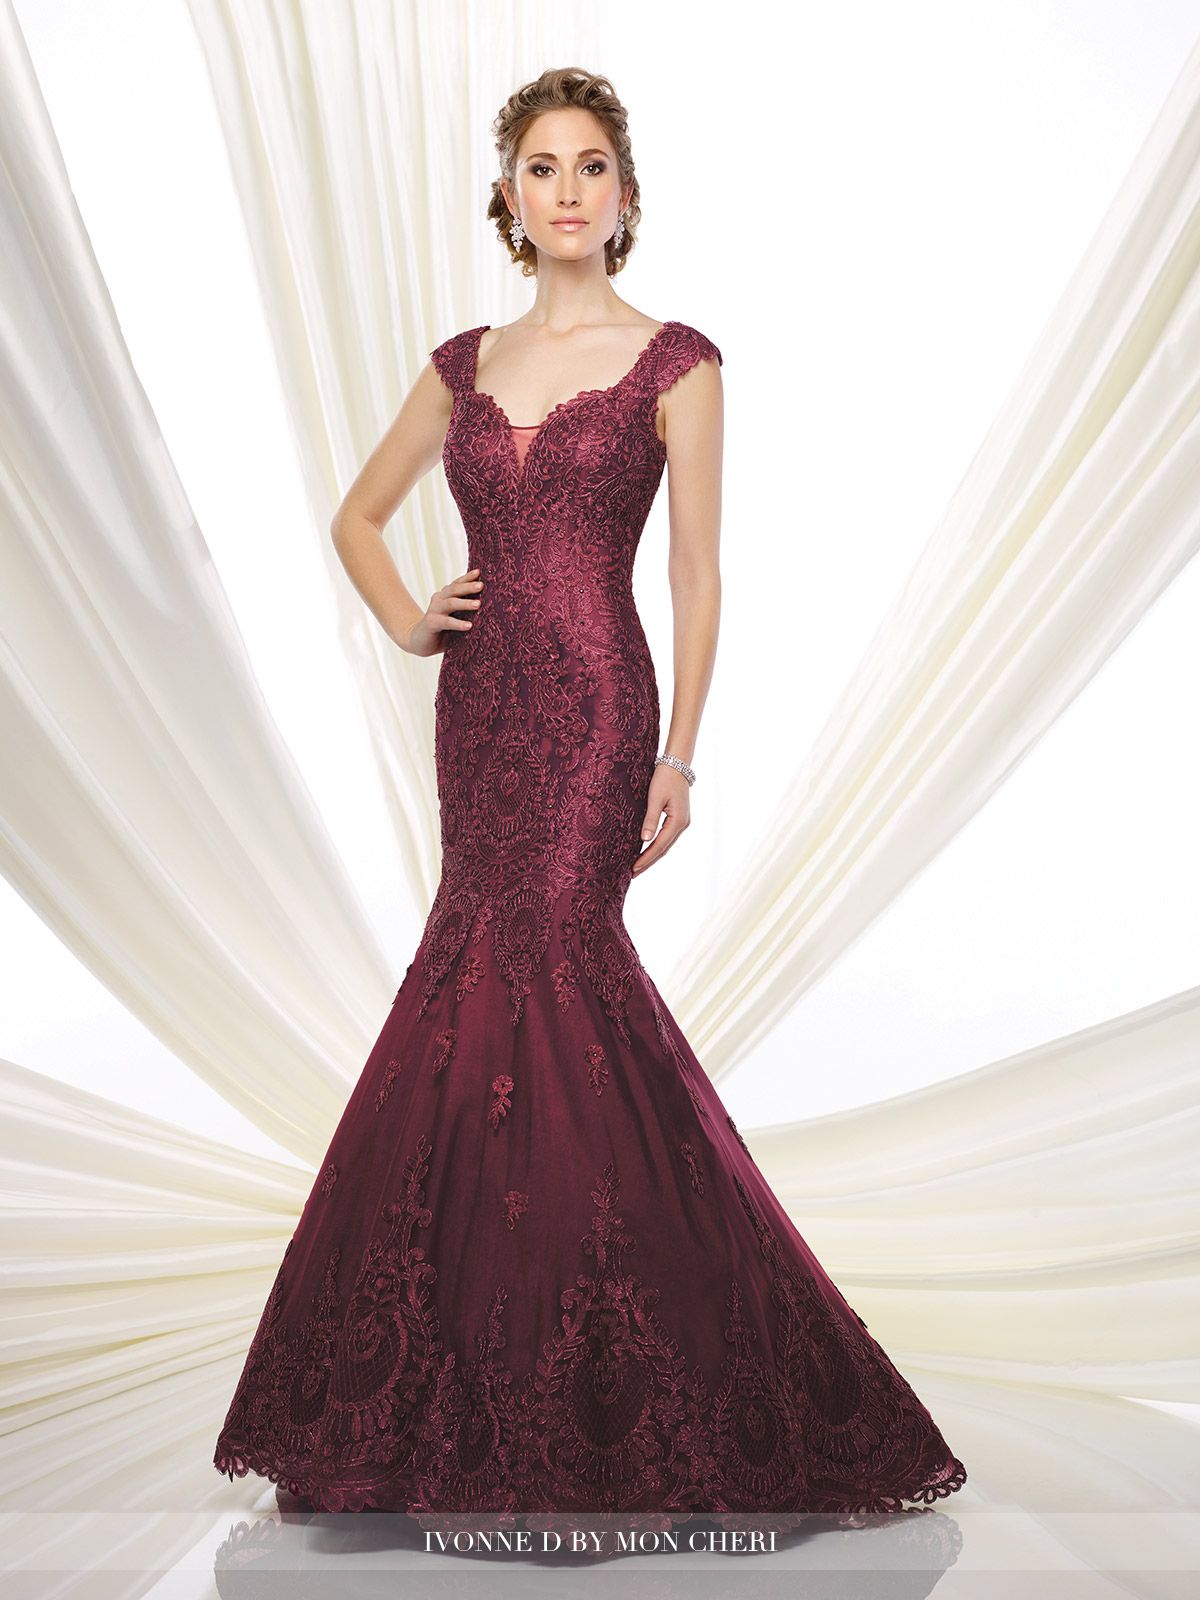 75f977a512 Couture Ivonne D Mother of the Bride Dresses 2019 for Mon Cheri ...